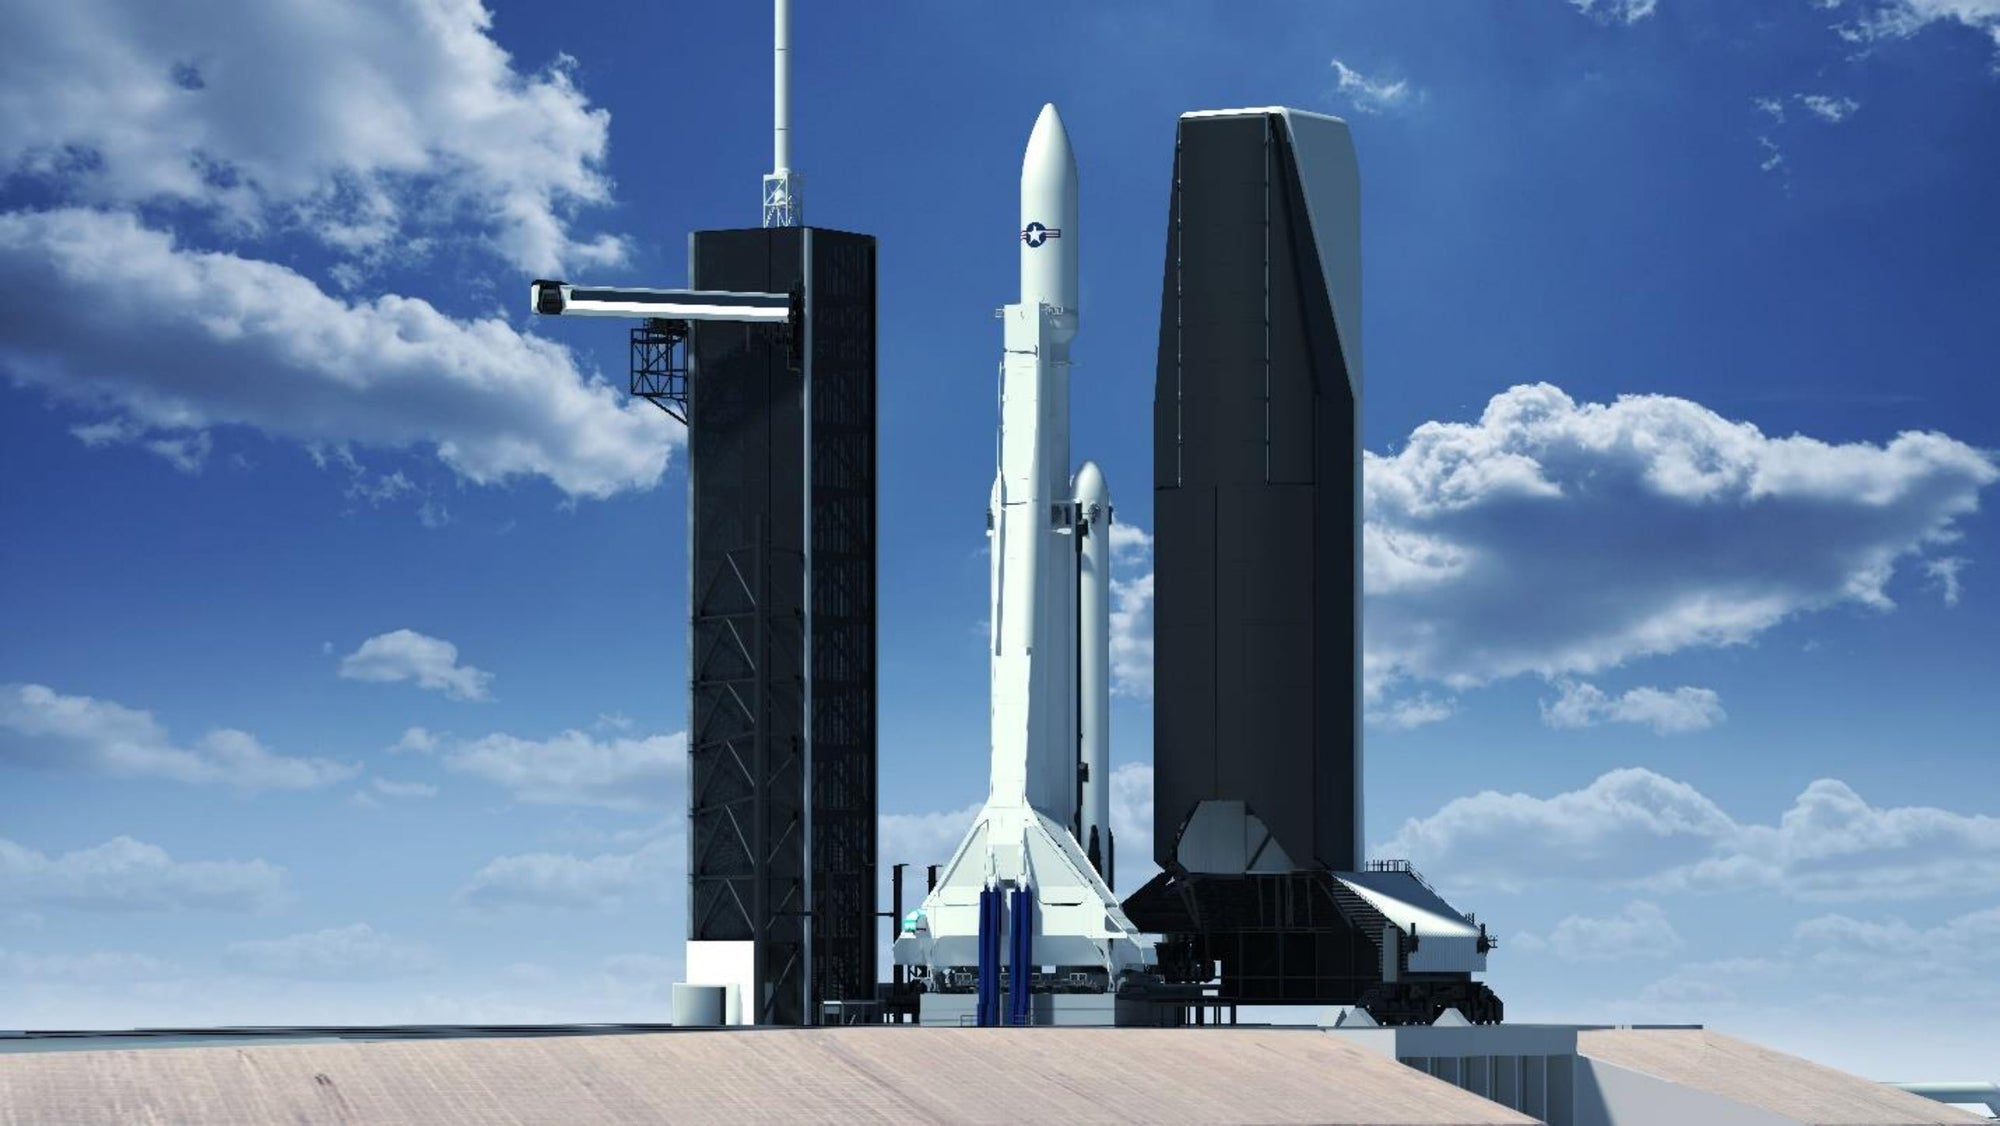 SpaceX will build an enclosed Rocket Mobile Service Tower for U.S. National Security Missions